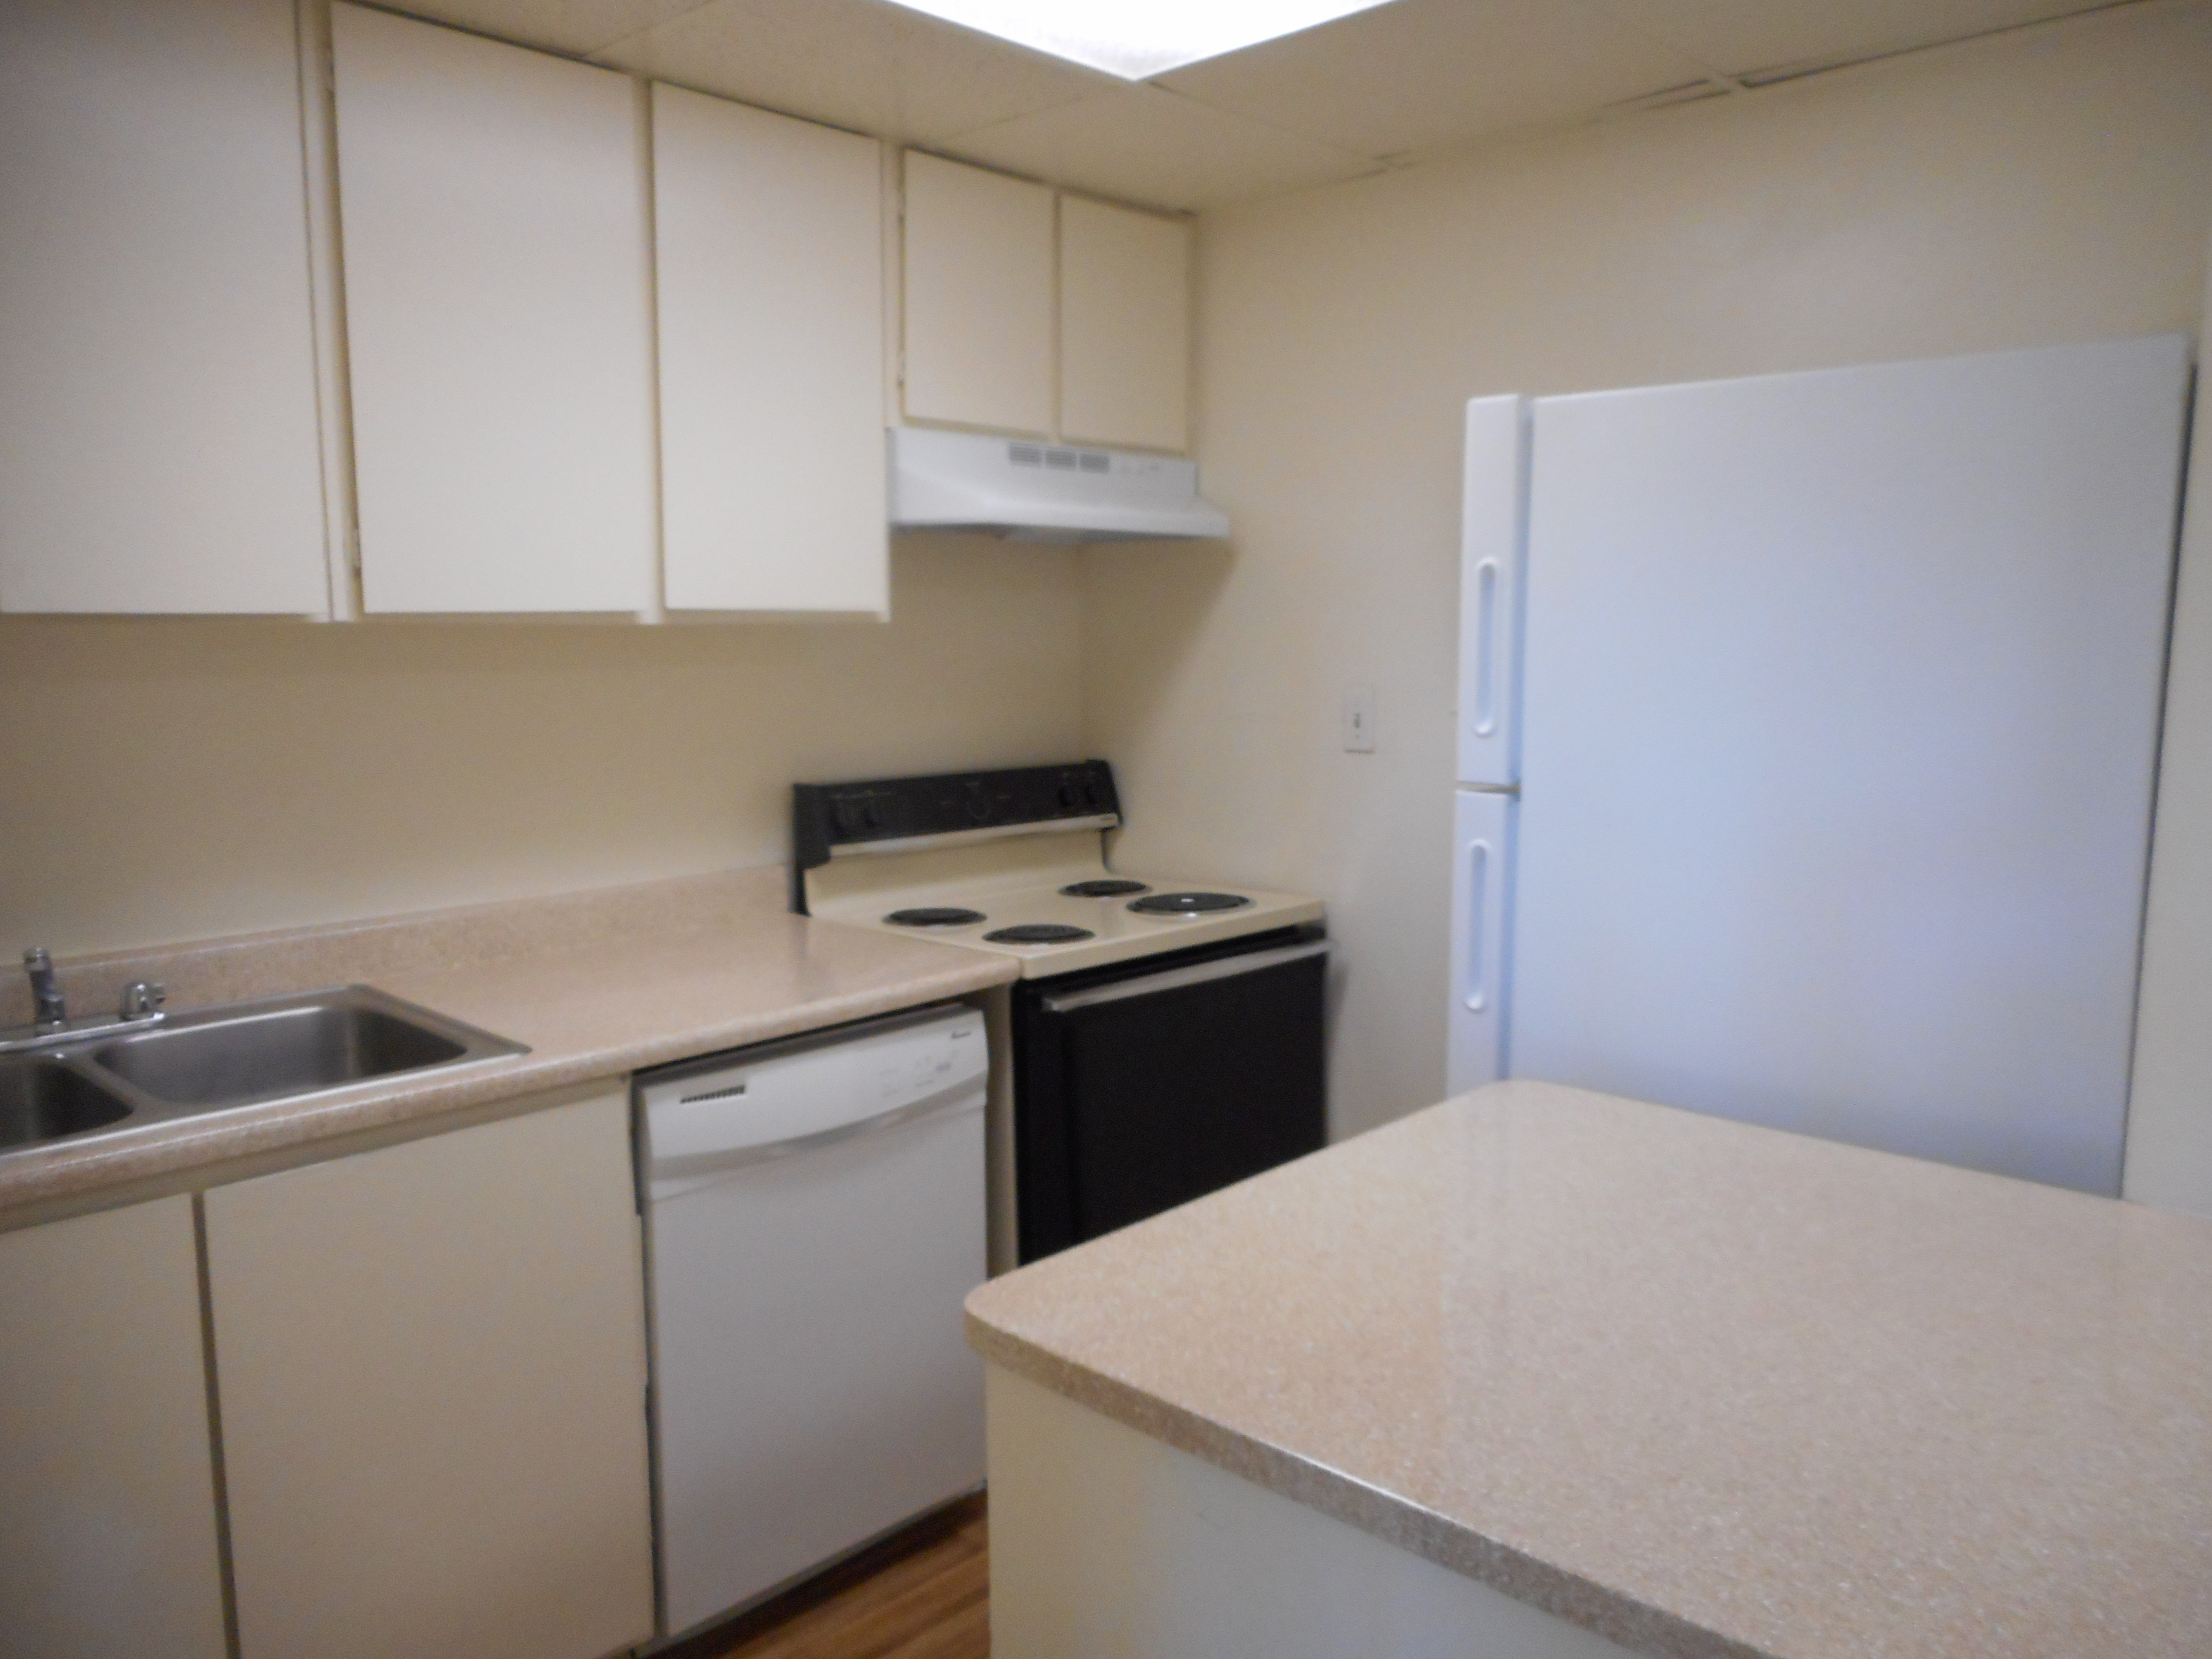 Apartments Near ASU McClintock Townhomes for Arizona State University Students in Tempe, AZ